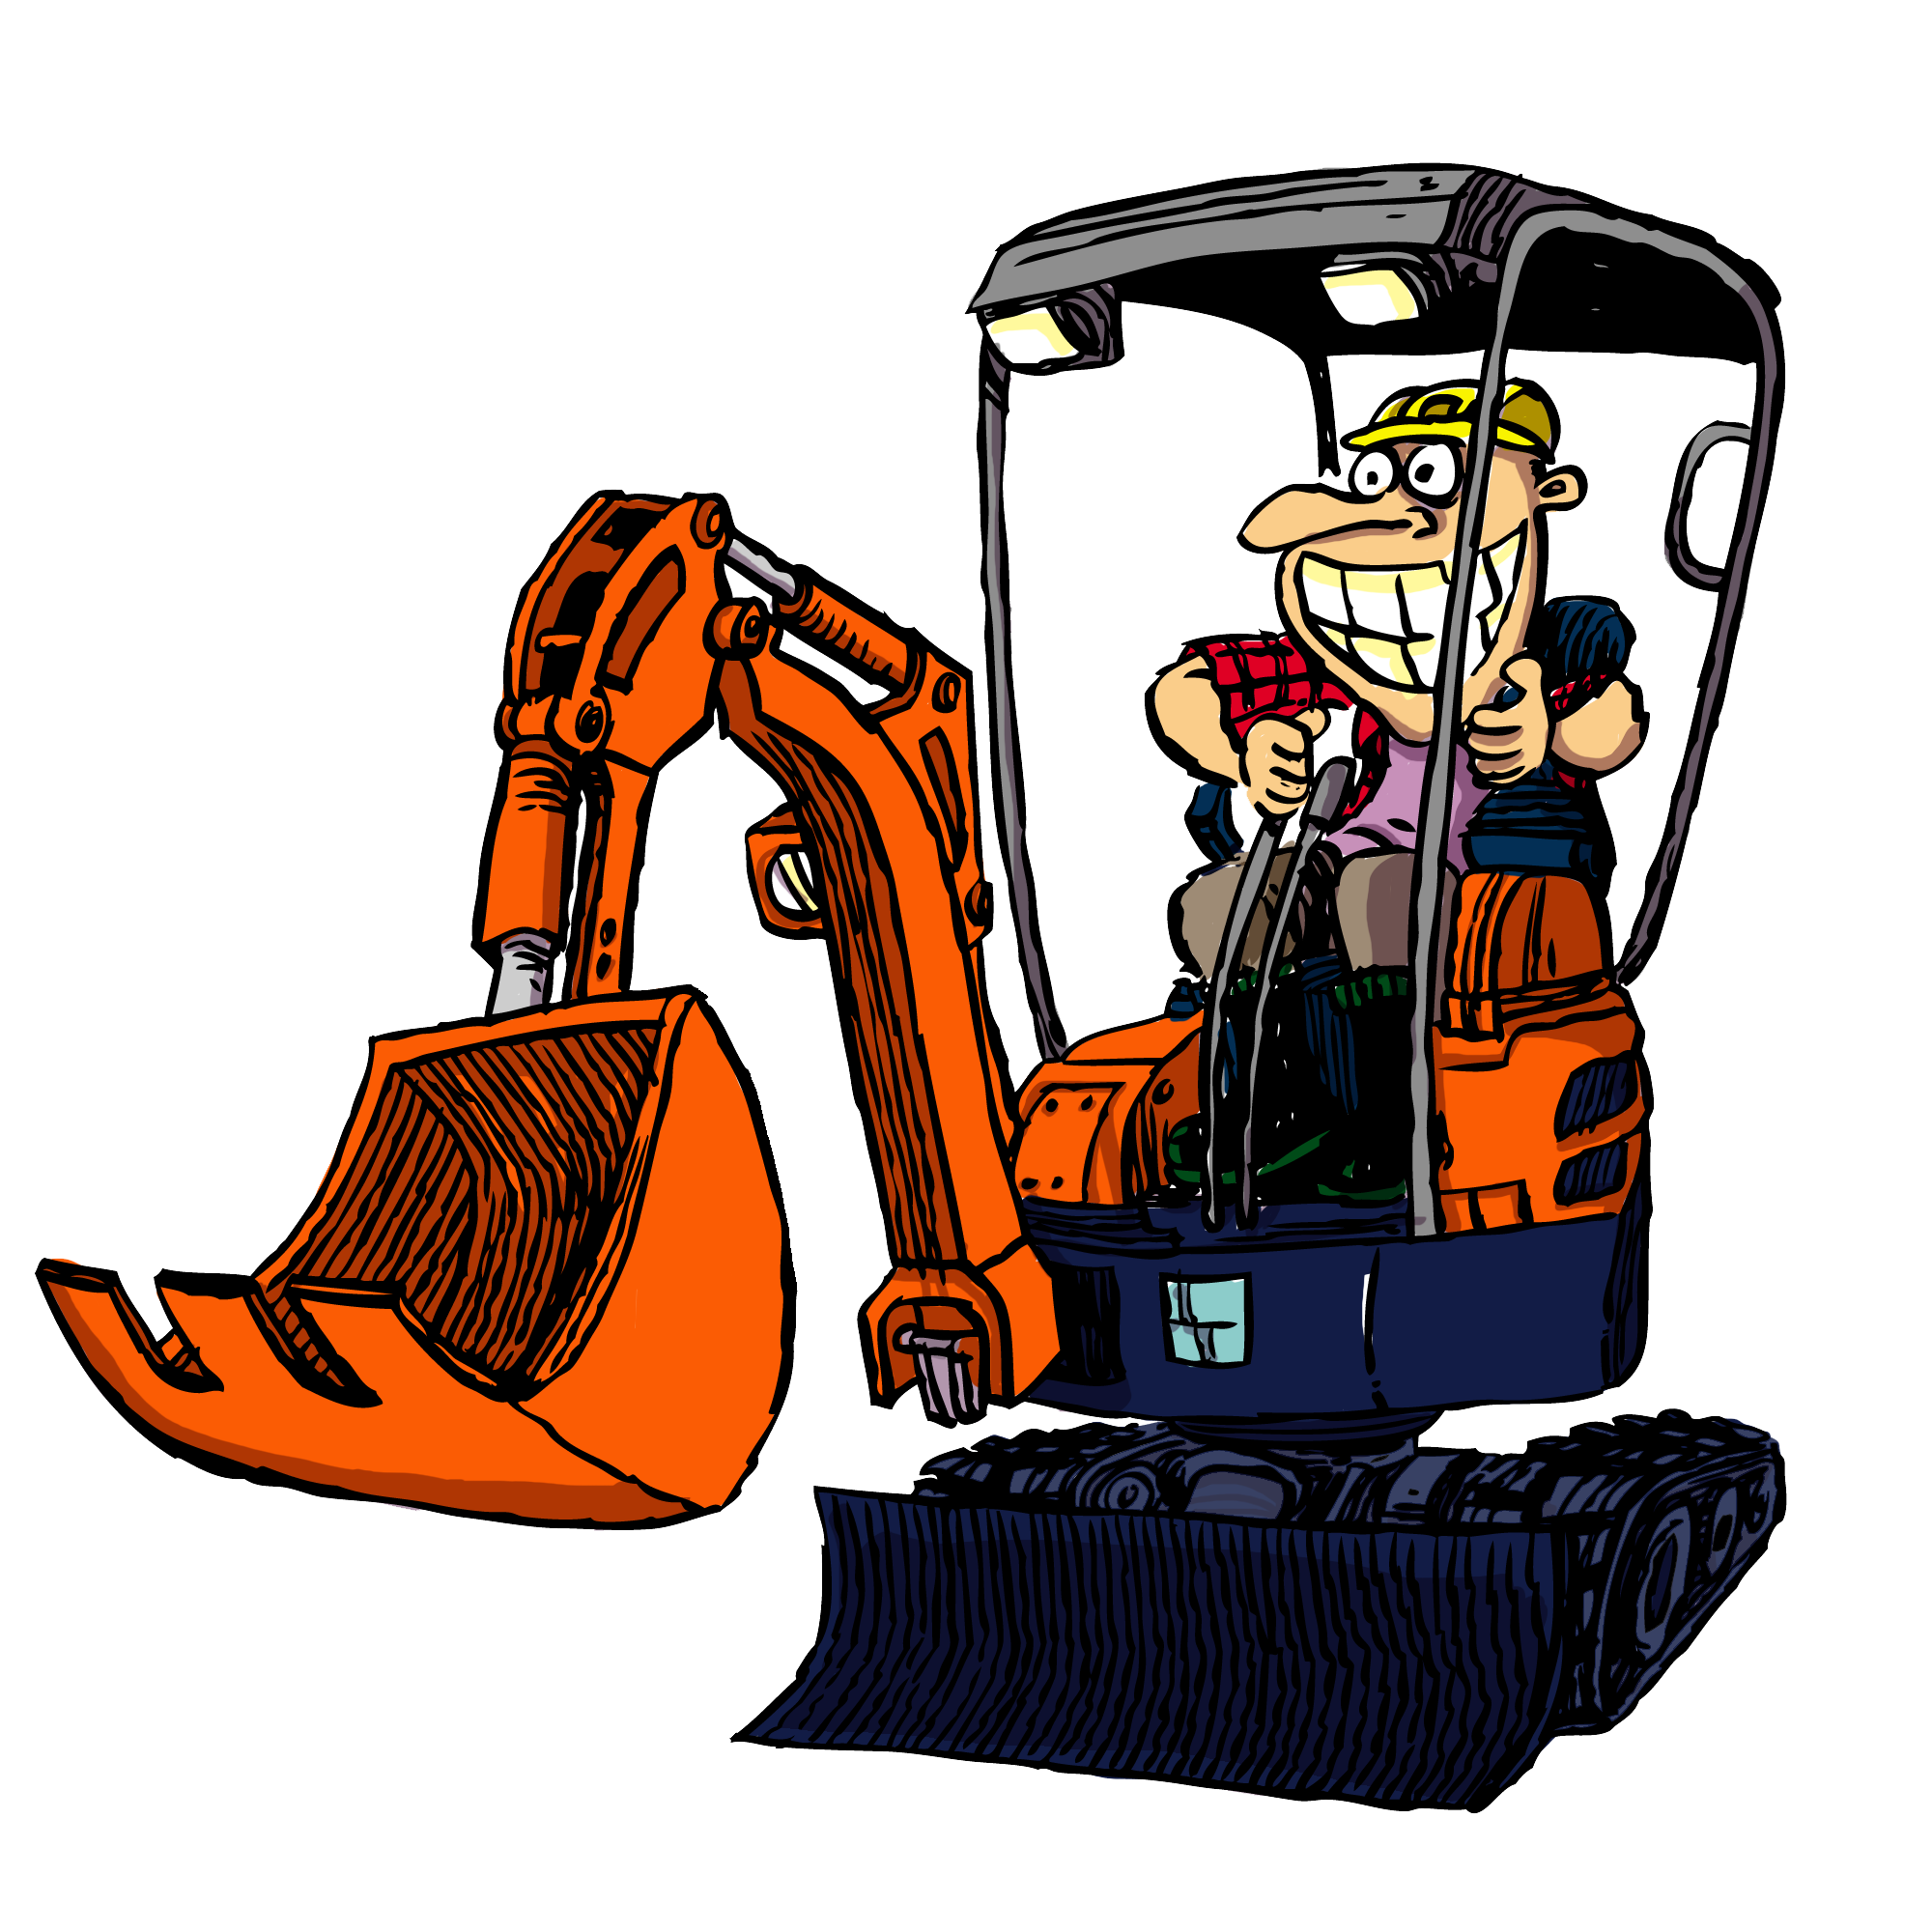 Excavator clipart plant machinery. Diggermate mini hire gold